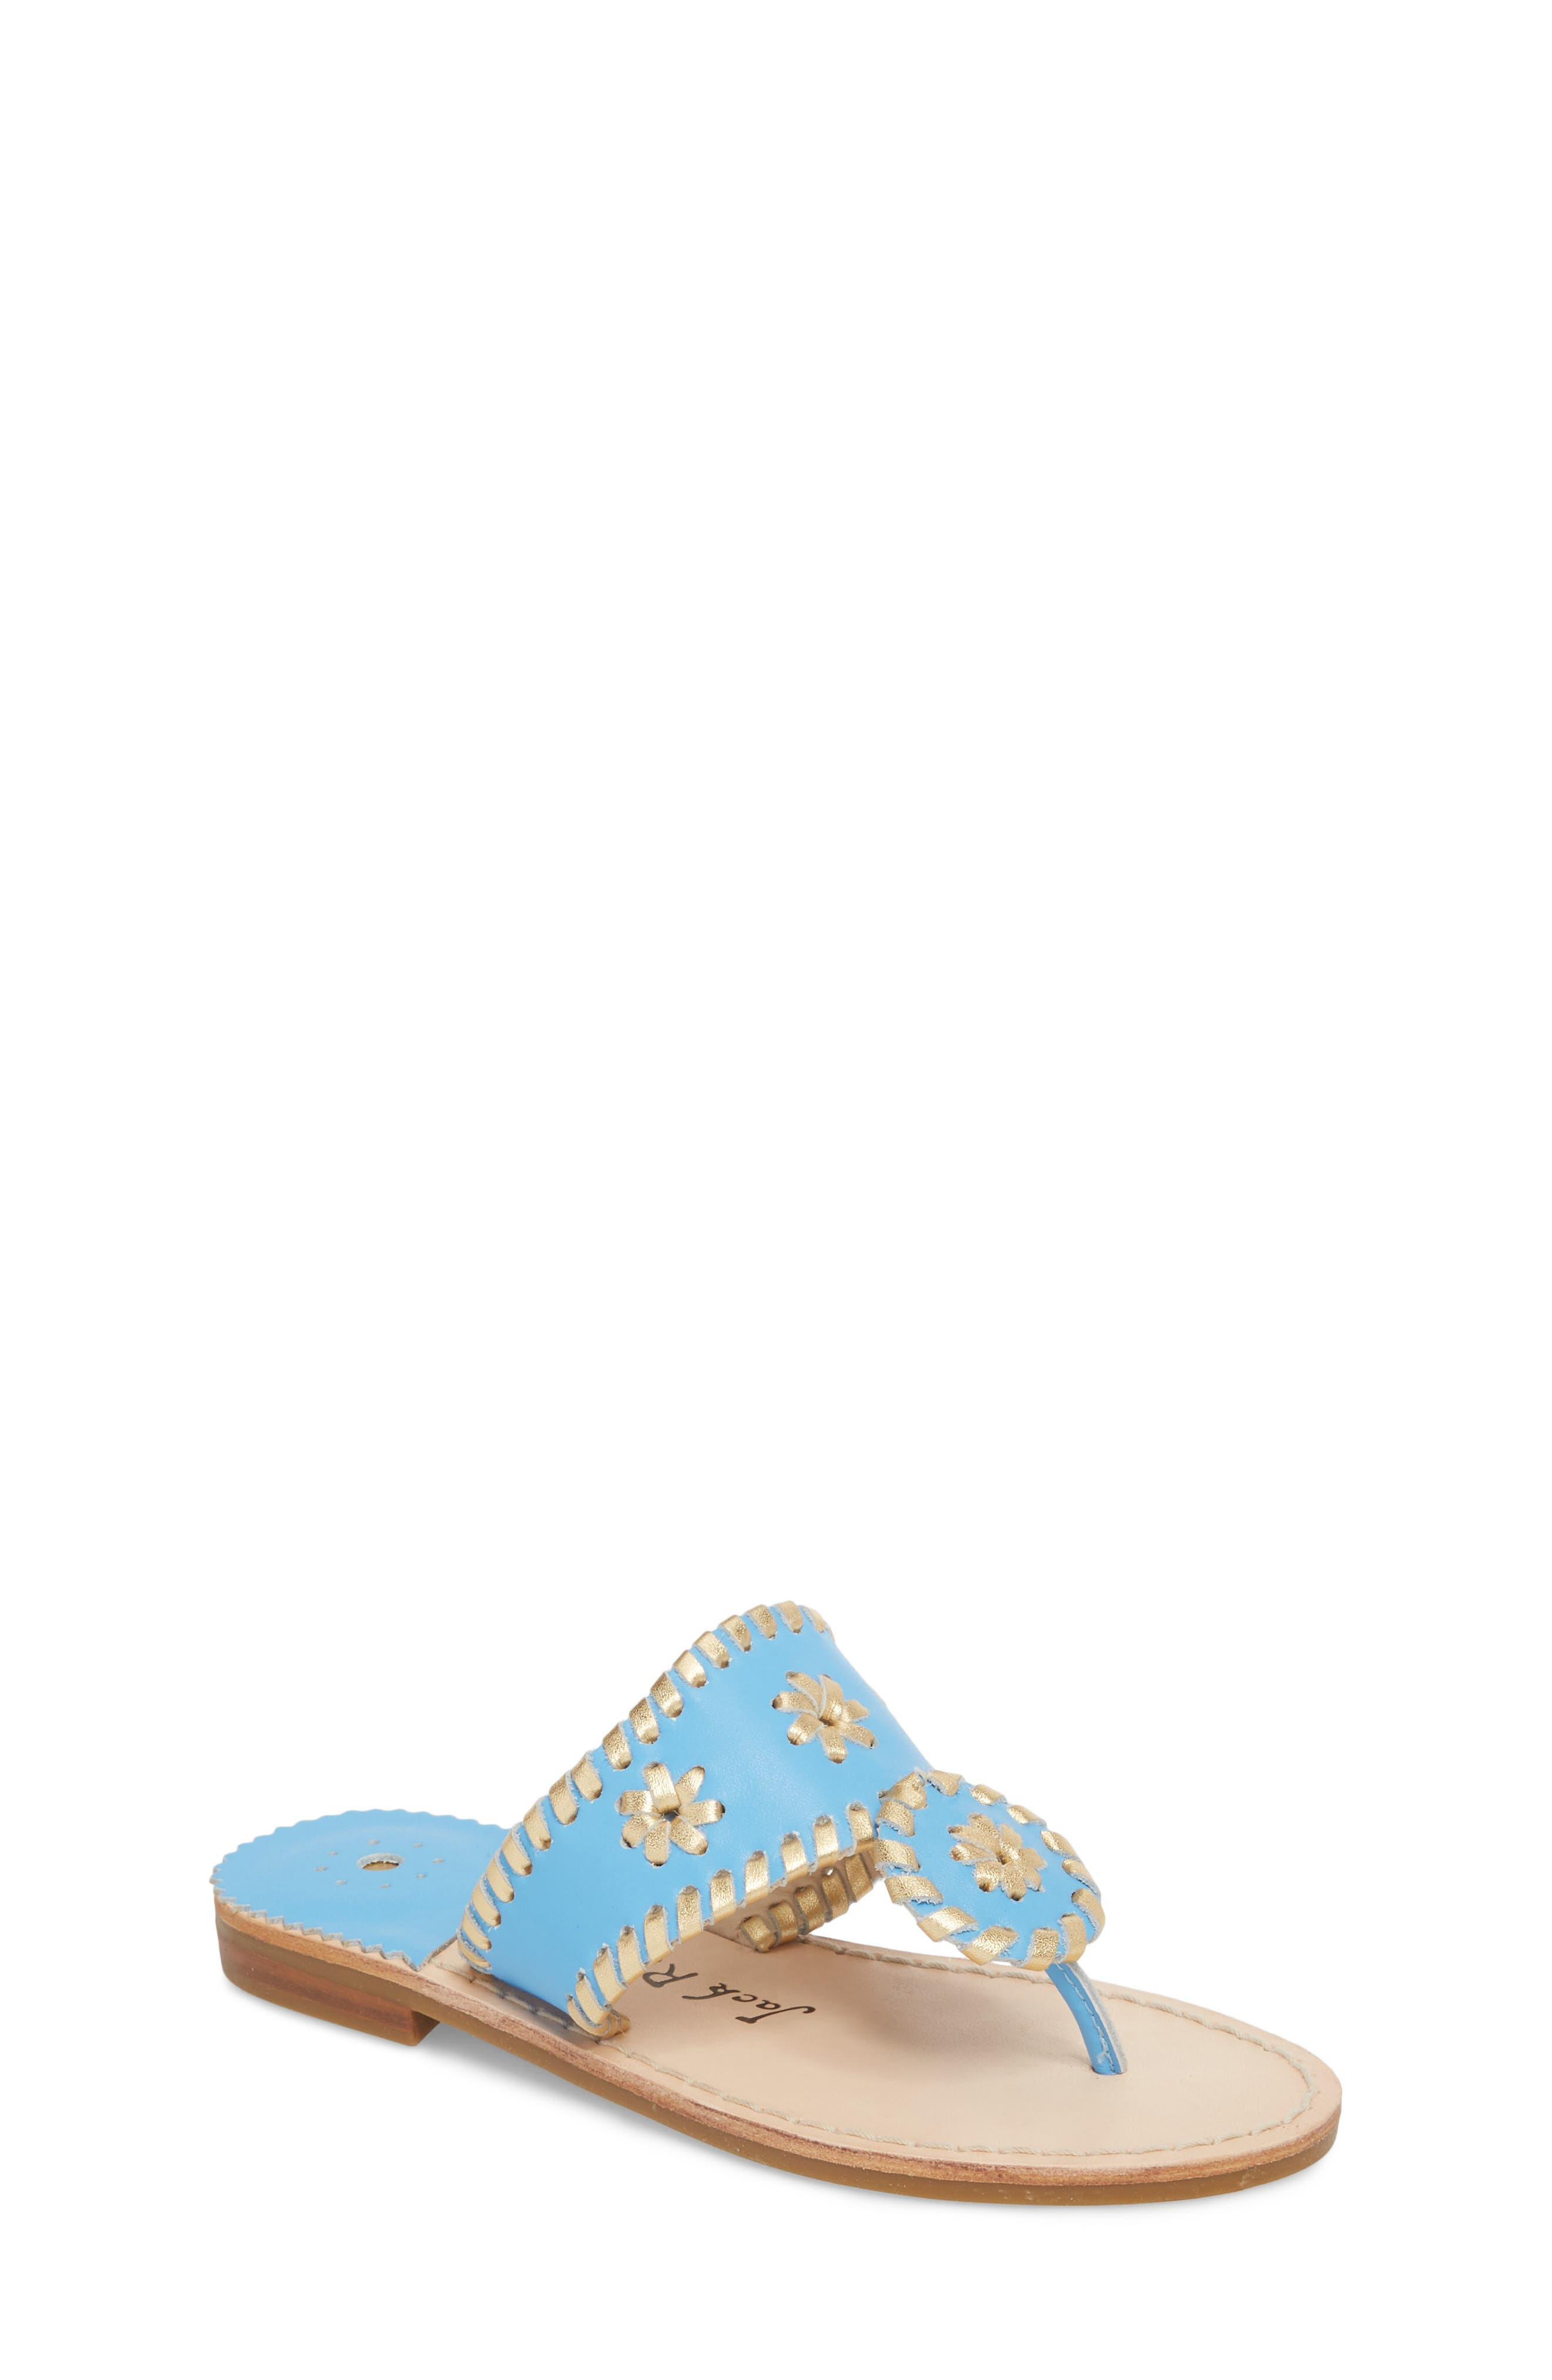 Miss Hollis Metallic Trim Thong Sandal,                             Main thumbnail 1, color,                             FRENCH BLUE/ GOLD LEATHER